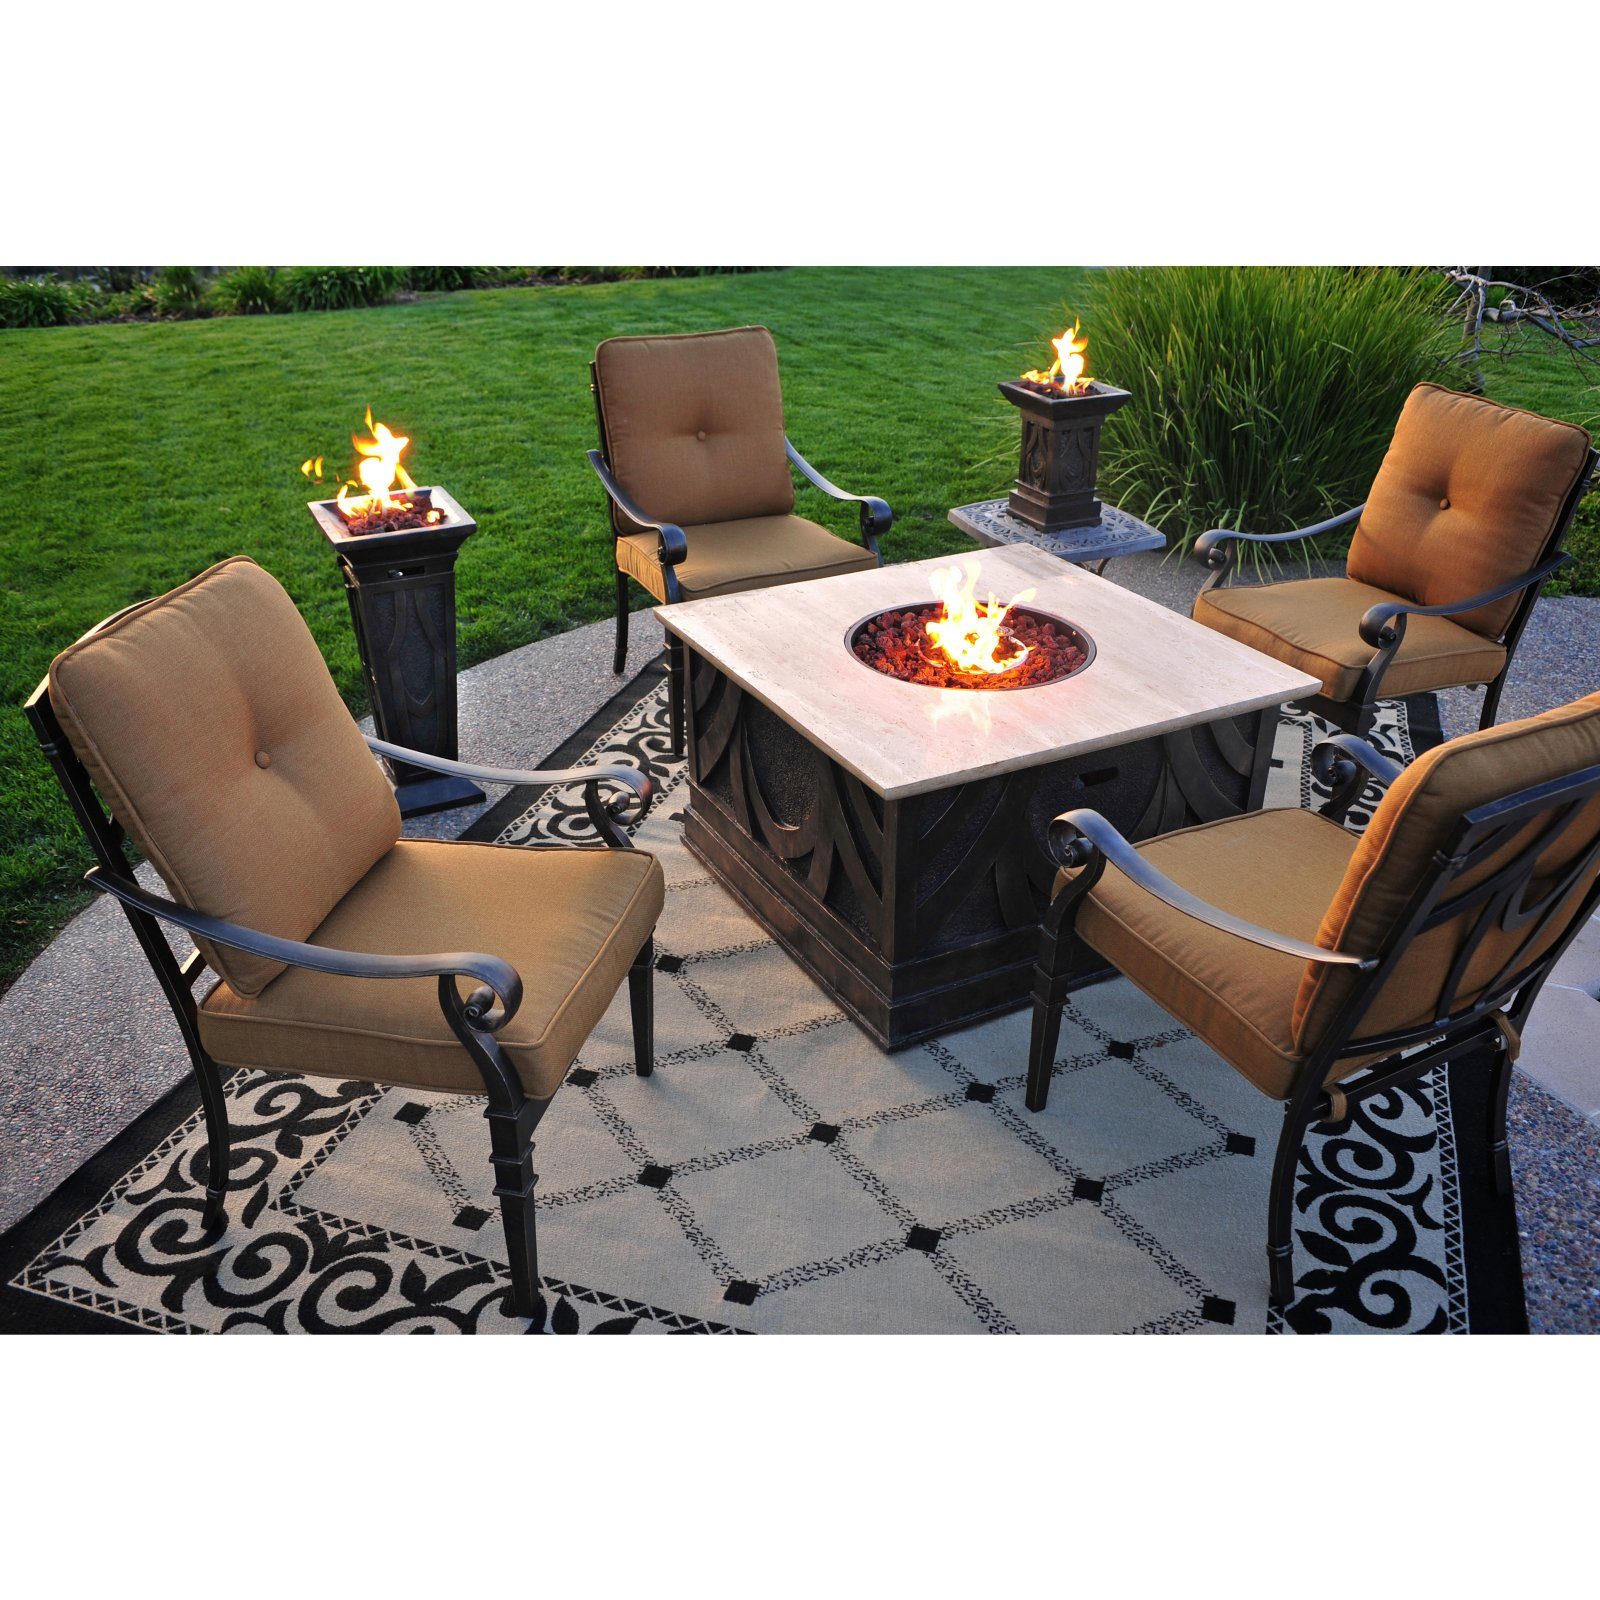 Fire Pit Table Living In Style - Outdoor furniture with gas fire pit table